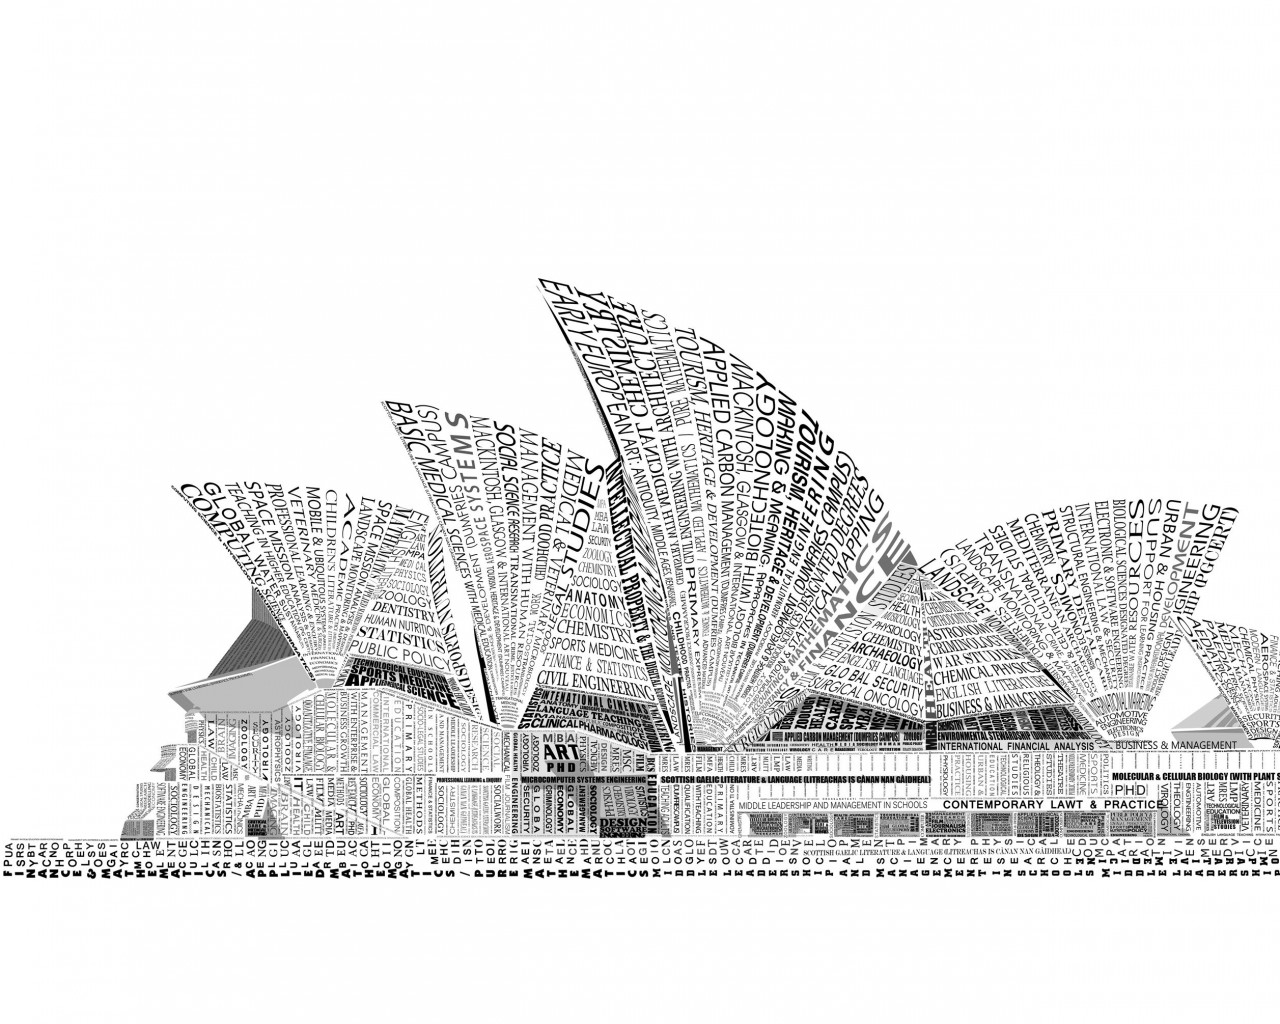 Opera House Sydney Typography Wallpaper for Desktop 1280x1024